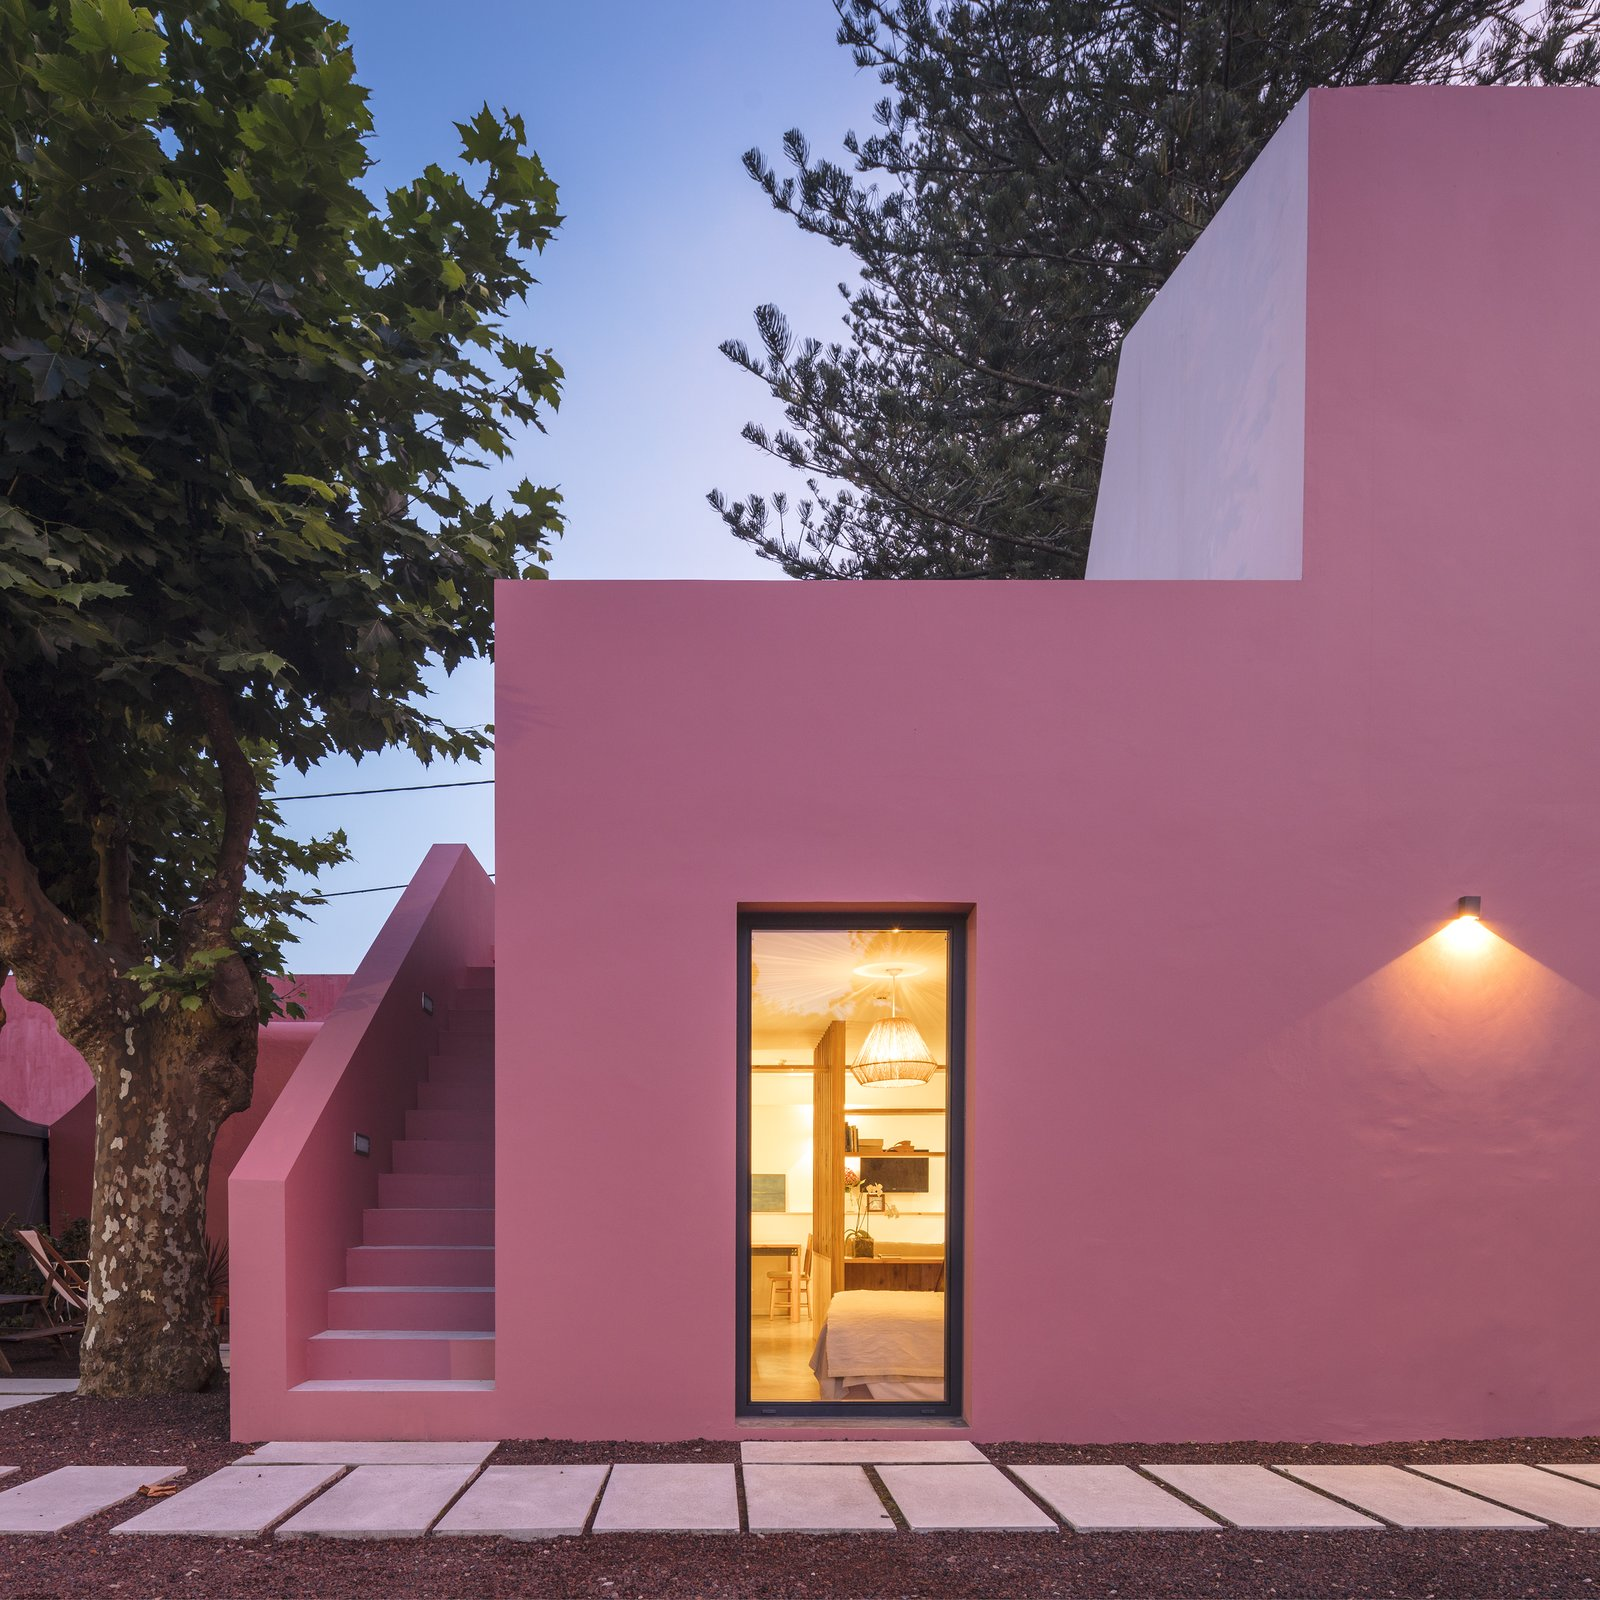 Exterior and Stucco Siding Material  Best Photos from Pink House